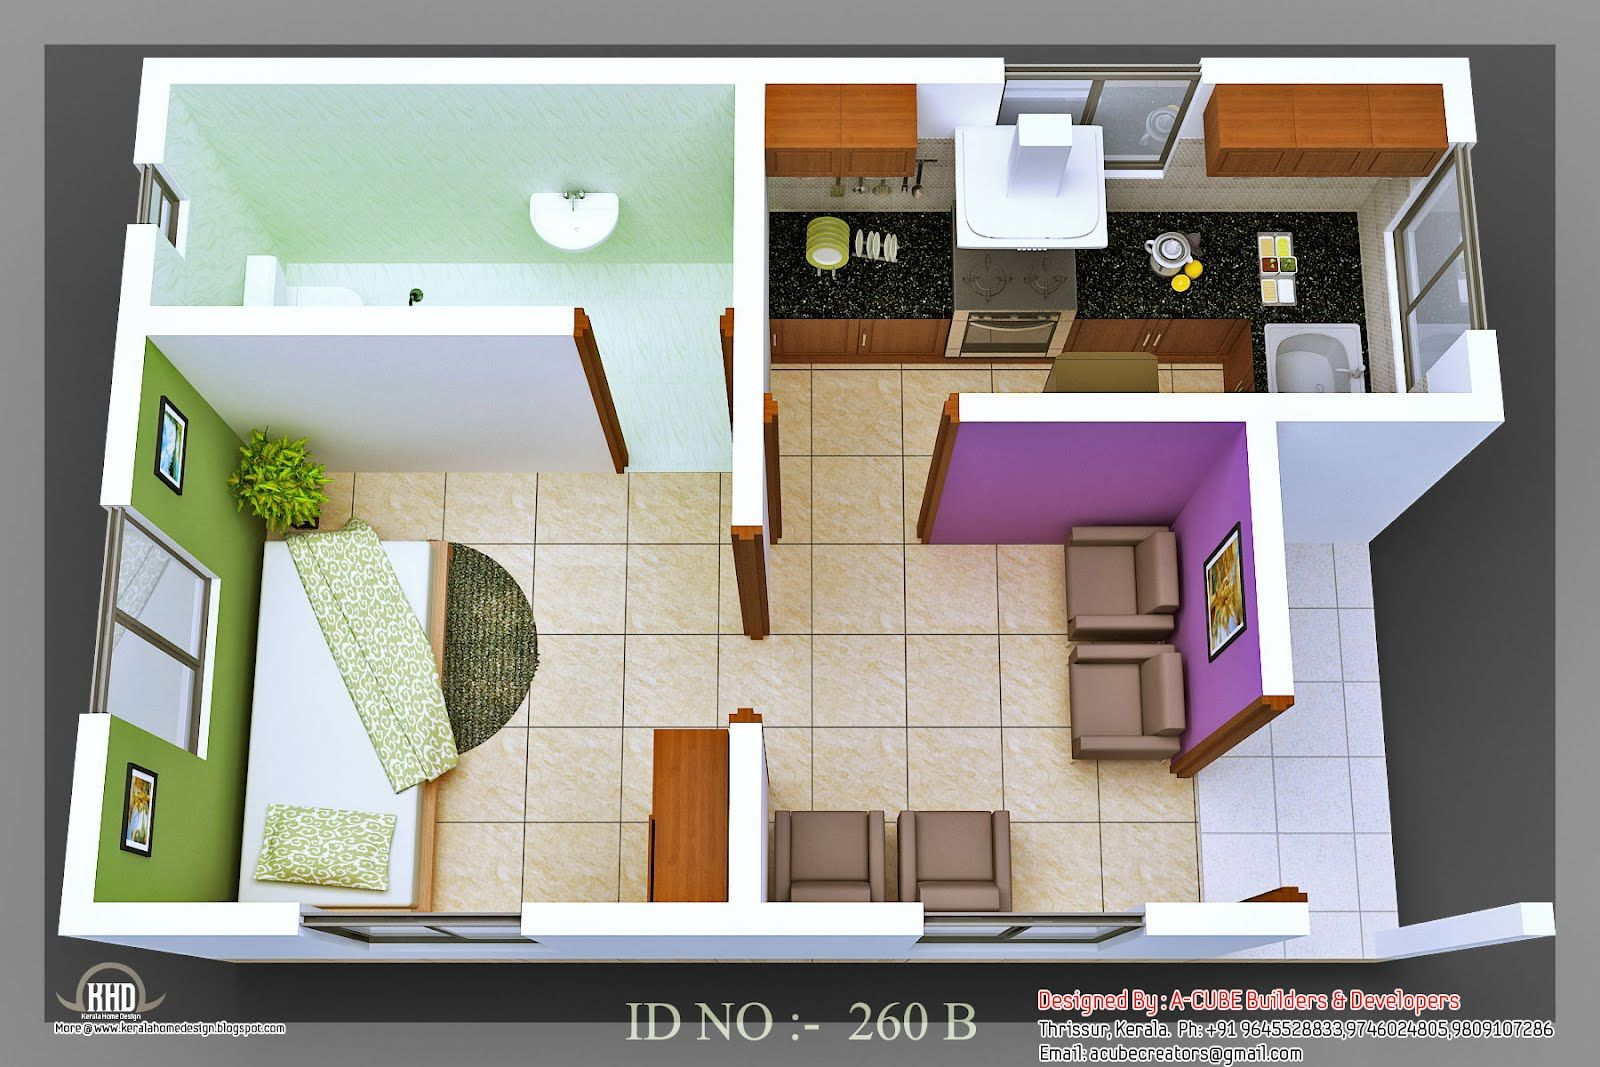 isometric views small house plans kerala home design floor information isometric small house plans - Small Homes Plans